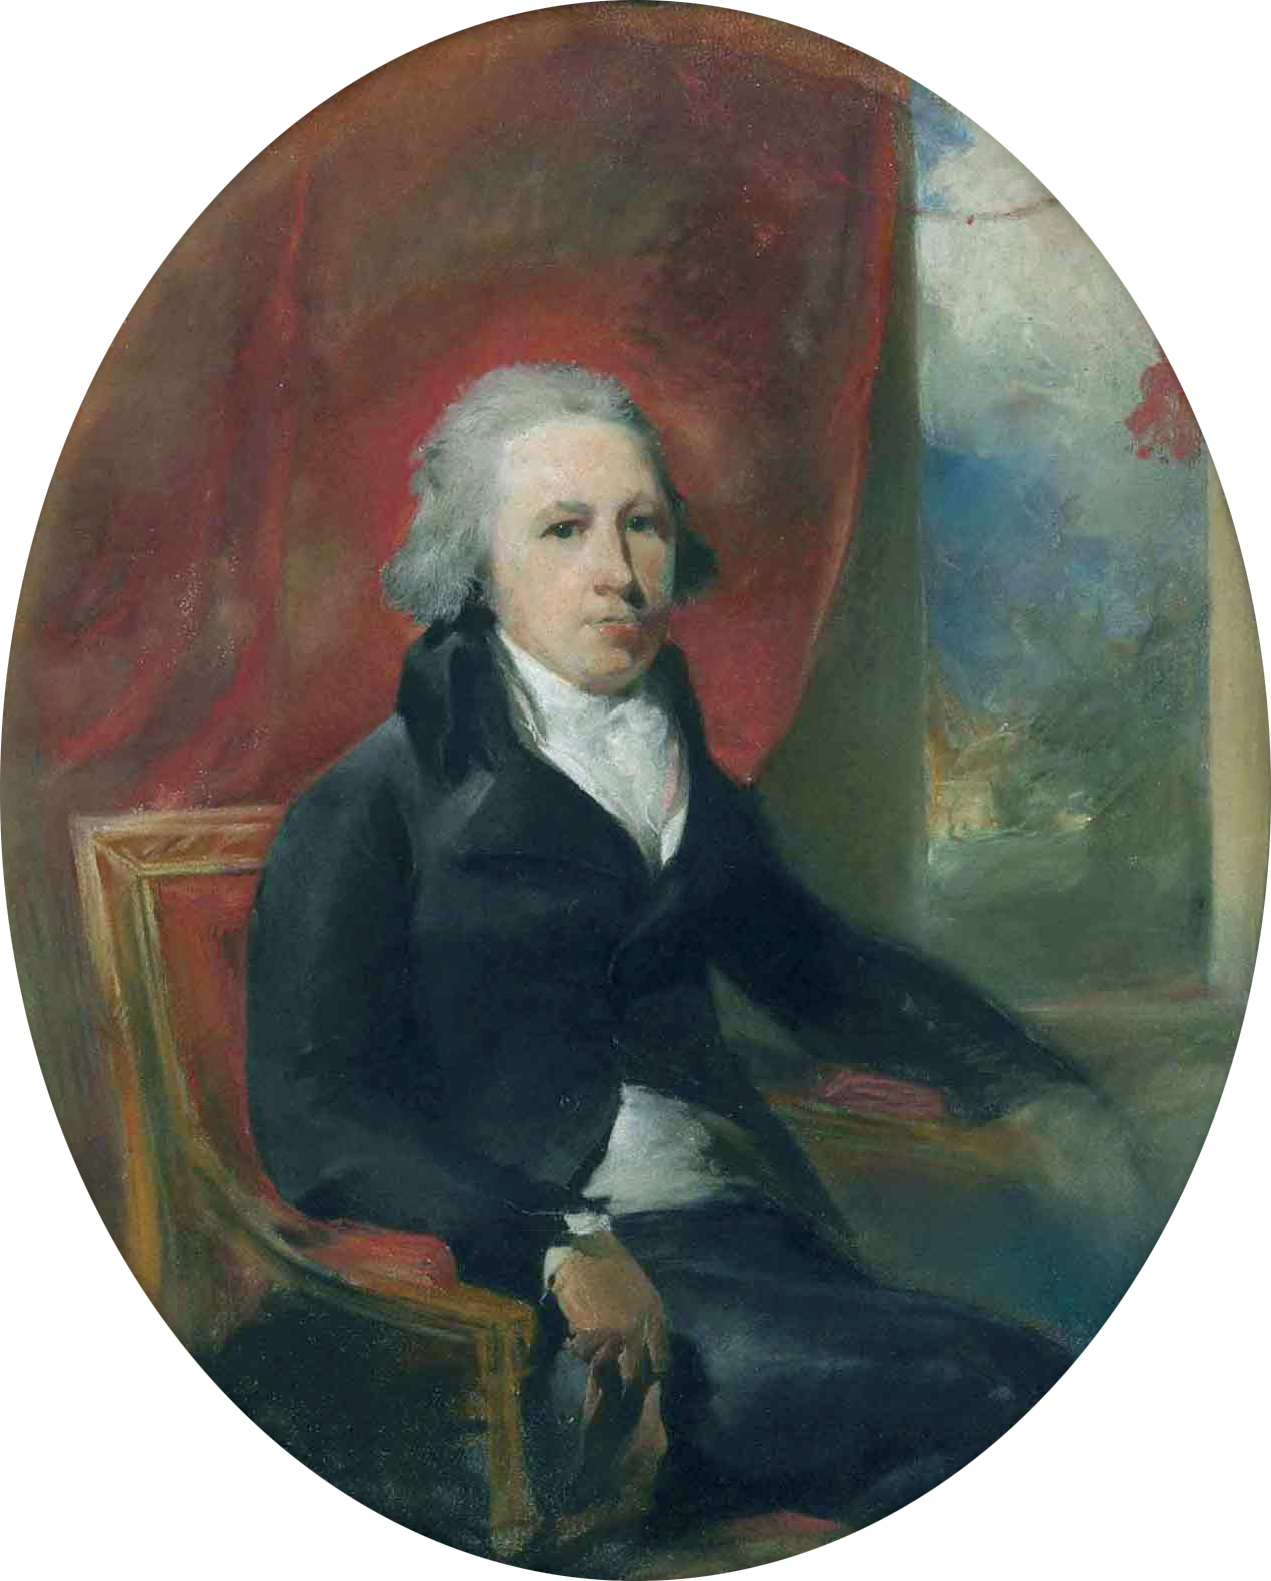 File:William Hamilton (1751-1801), by Thomas Lawrence.jpg